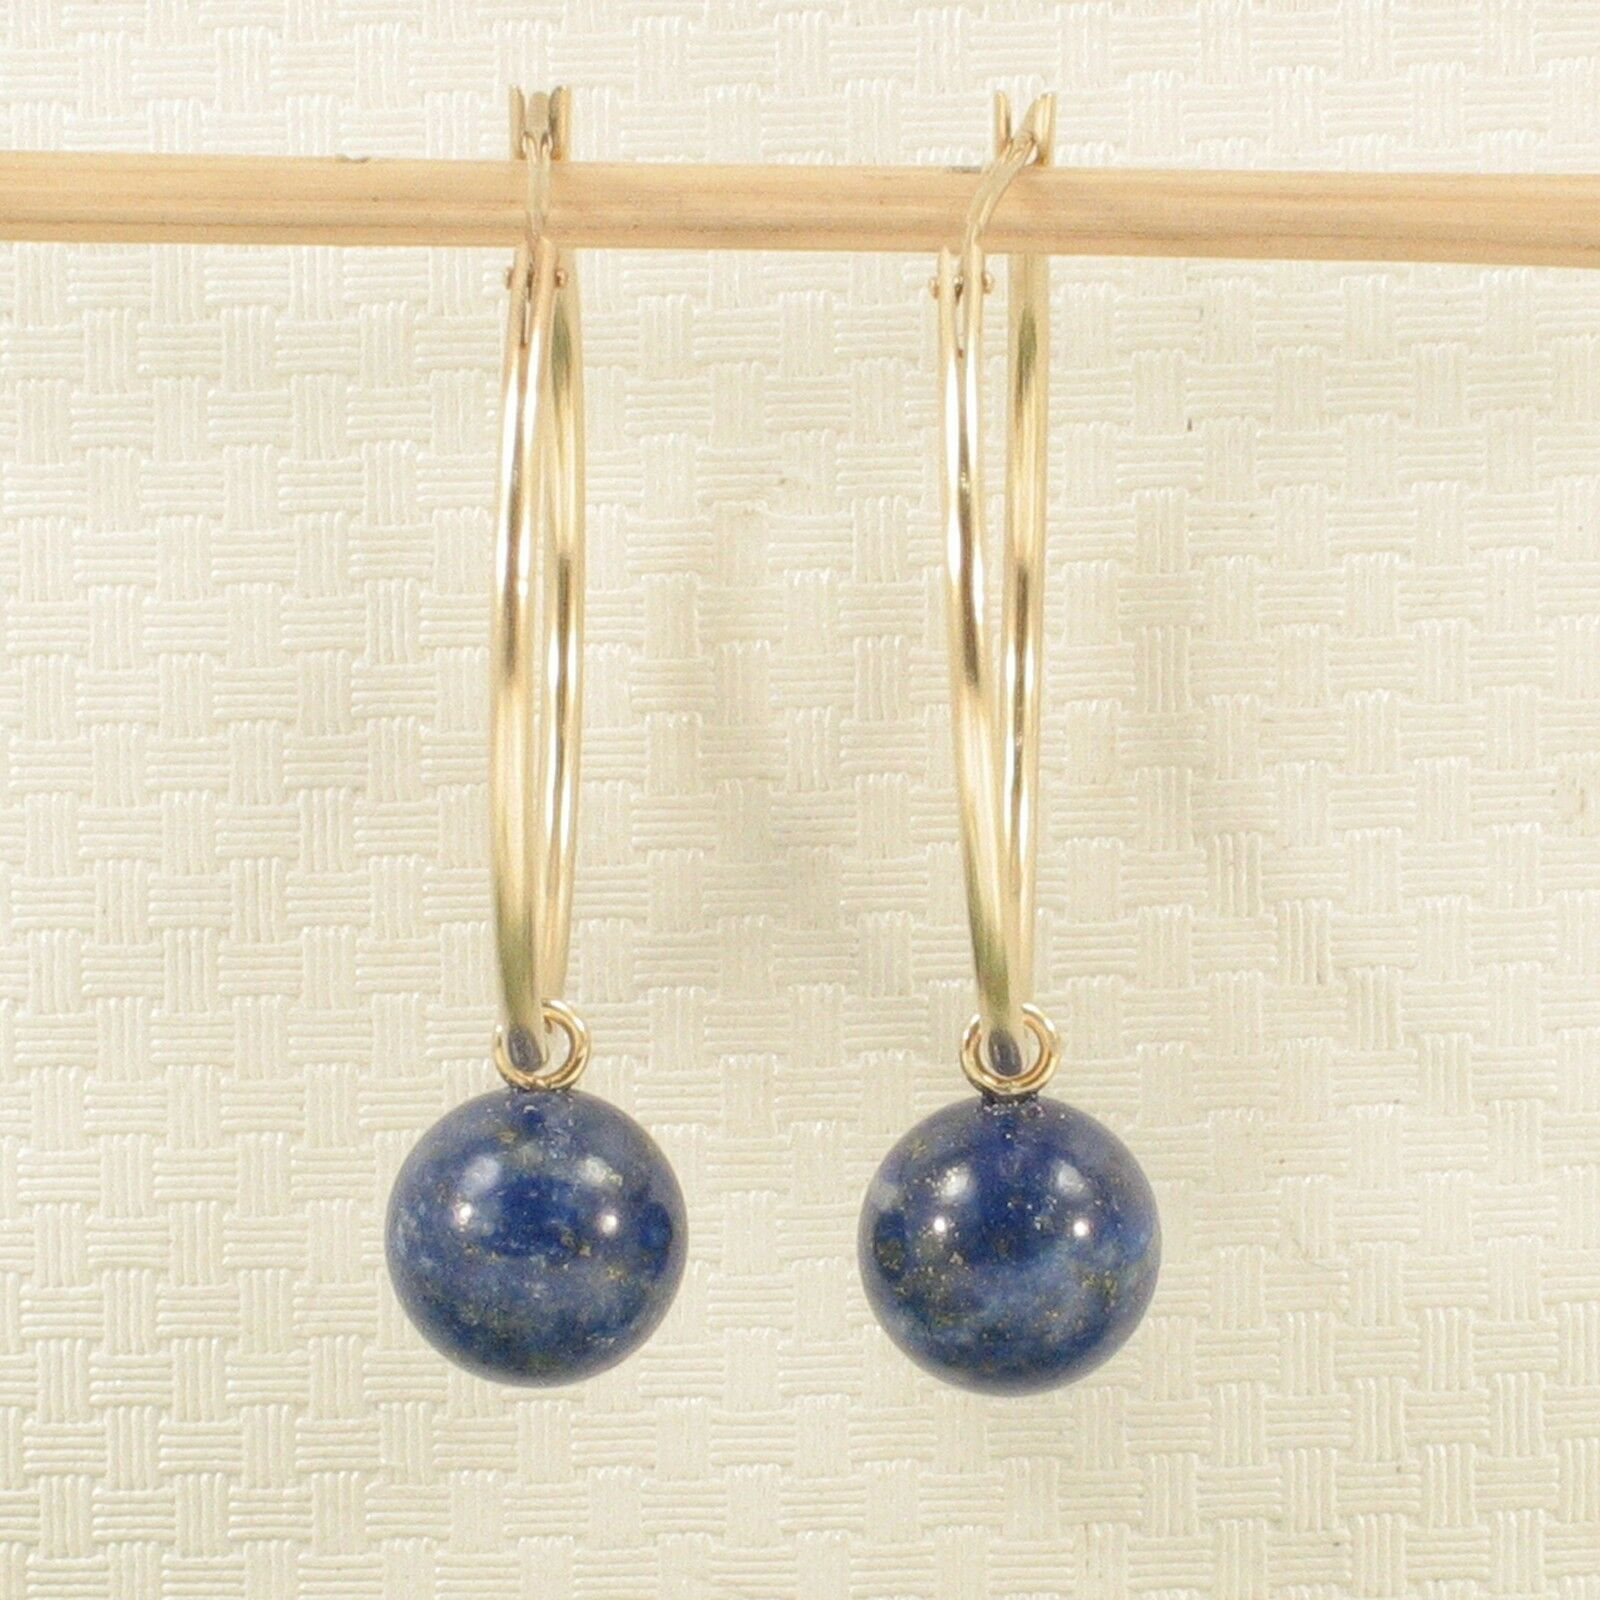 14k Yellow gold 25 X 1.25mm Hoop 8-8.5mm bluee Lapis Lbluei Dangle Earrings TPJ